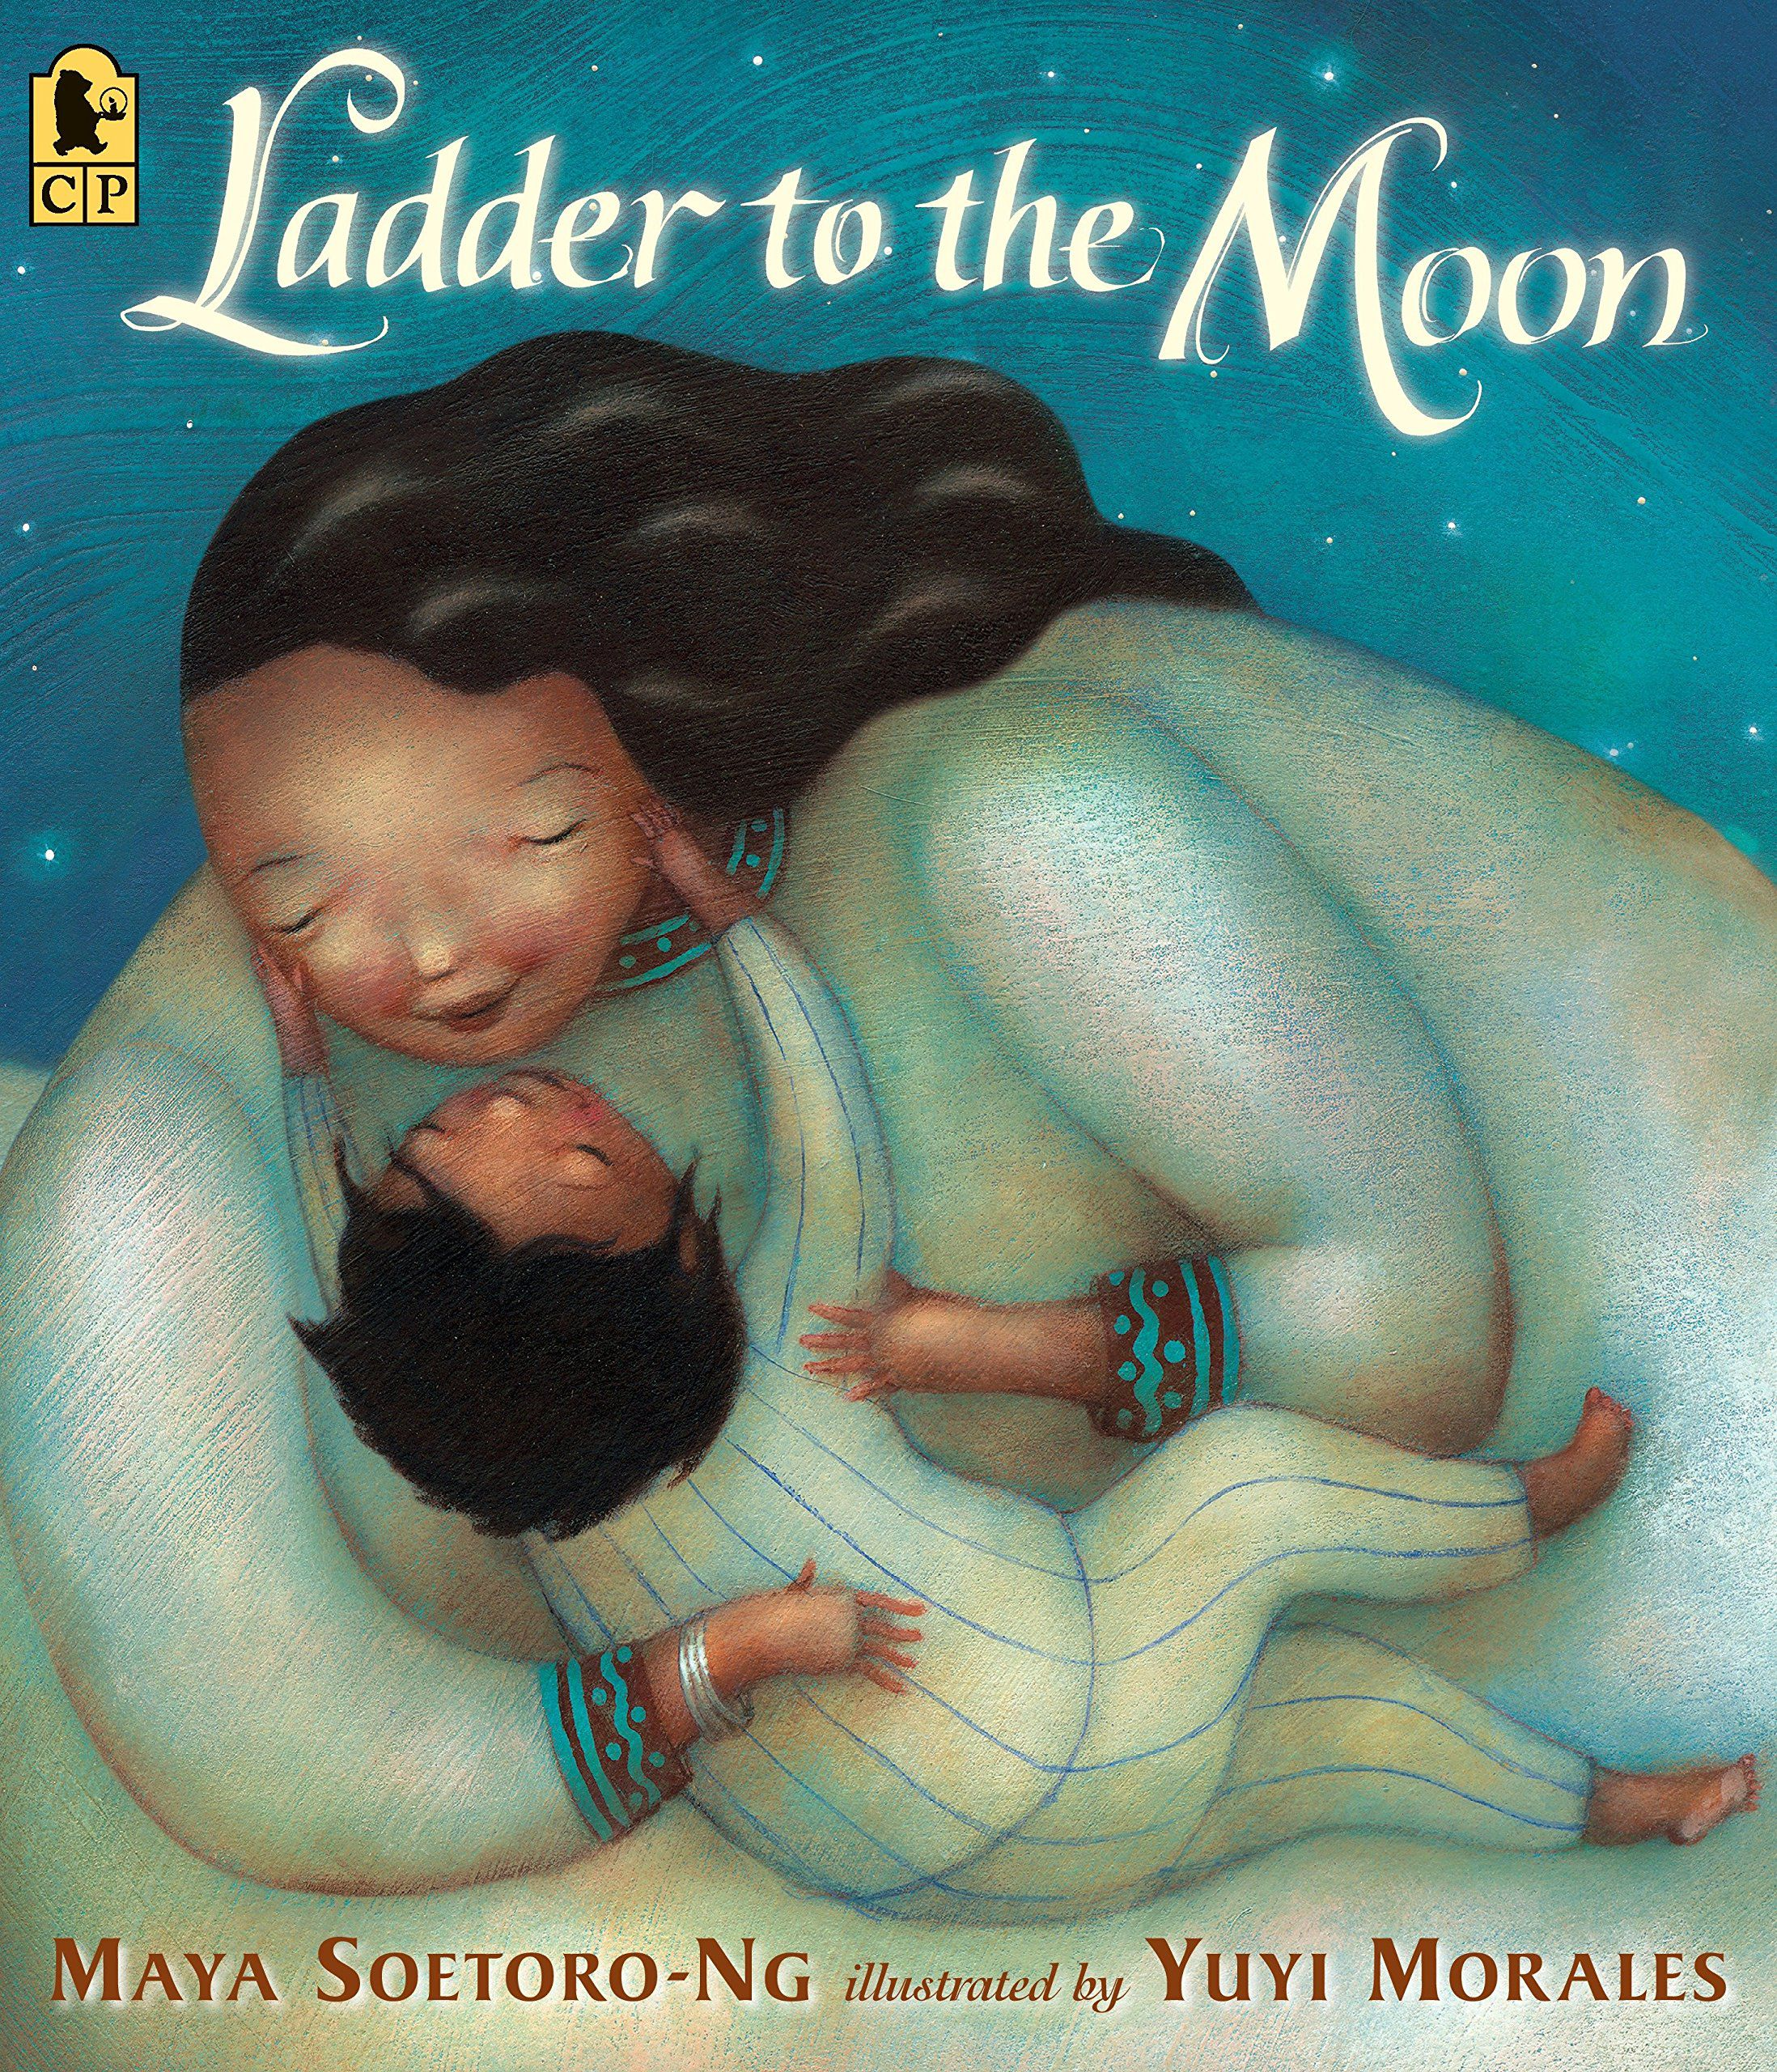 ladder to the moon cover